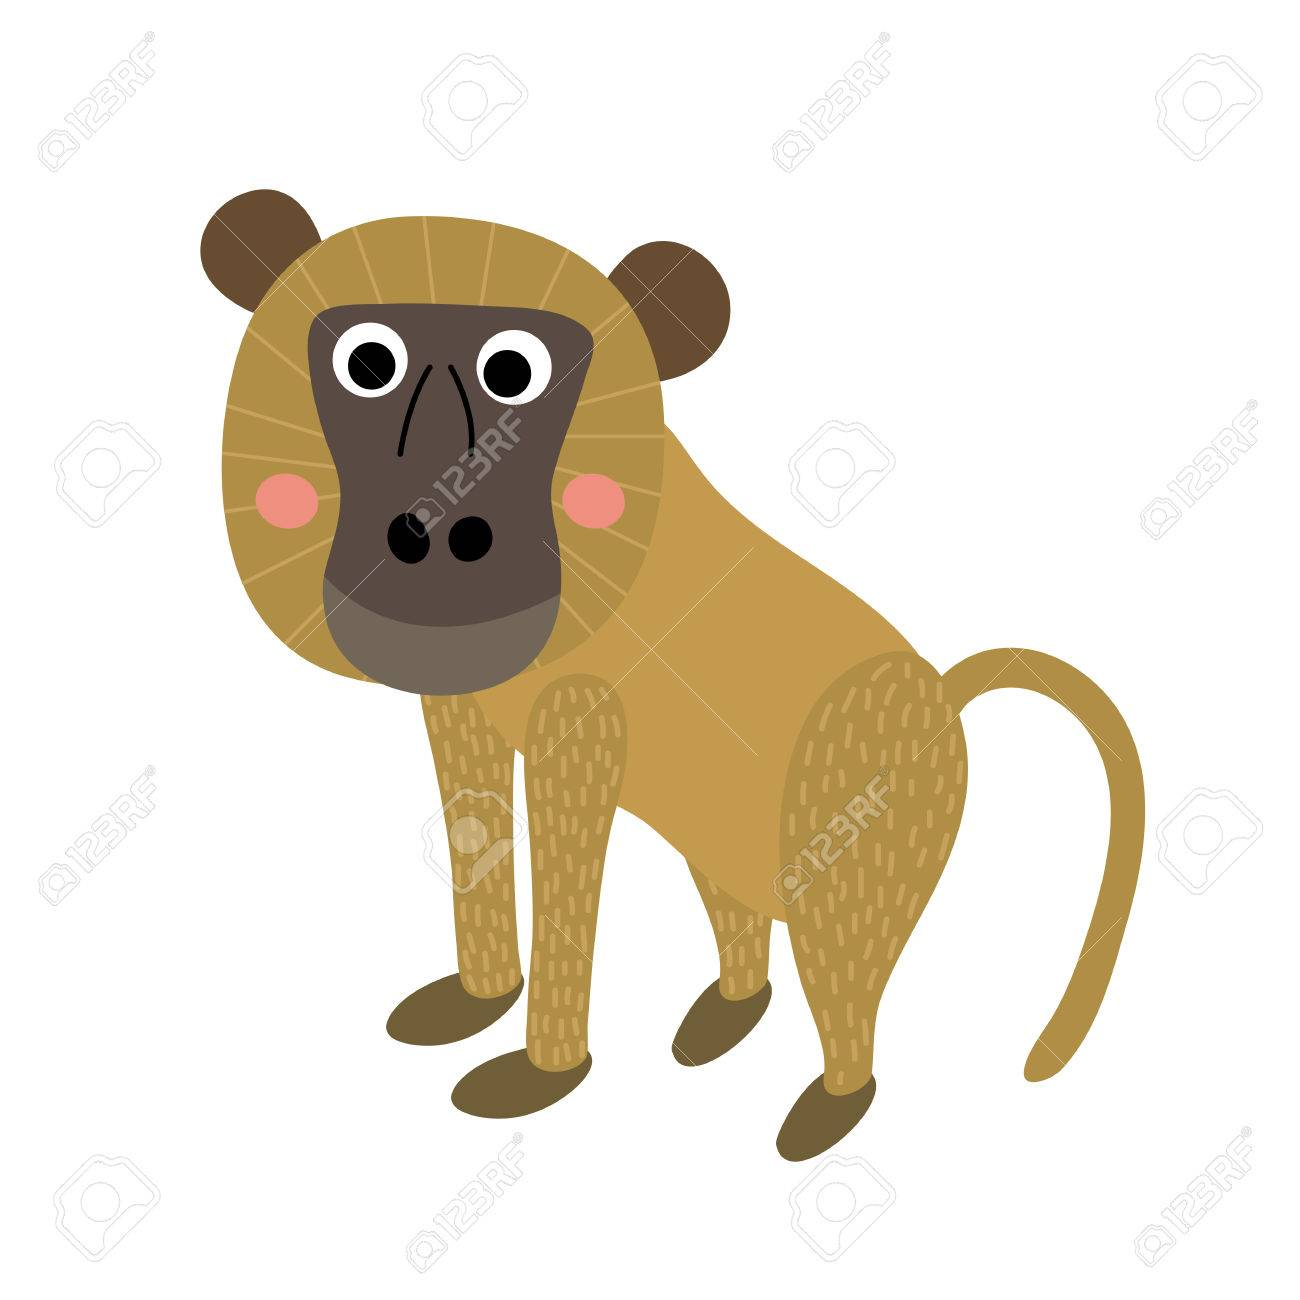 hight resolution of vector yellow baboon monkey animal cartoon character isolated on white background illustration